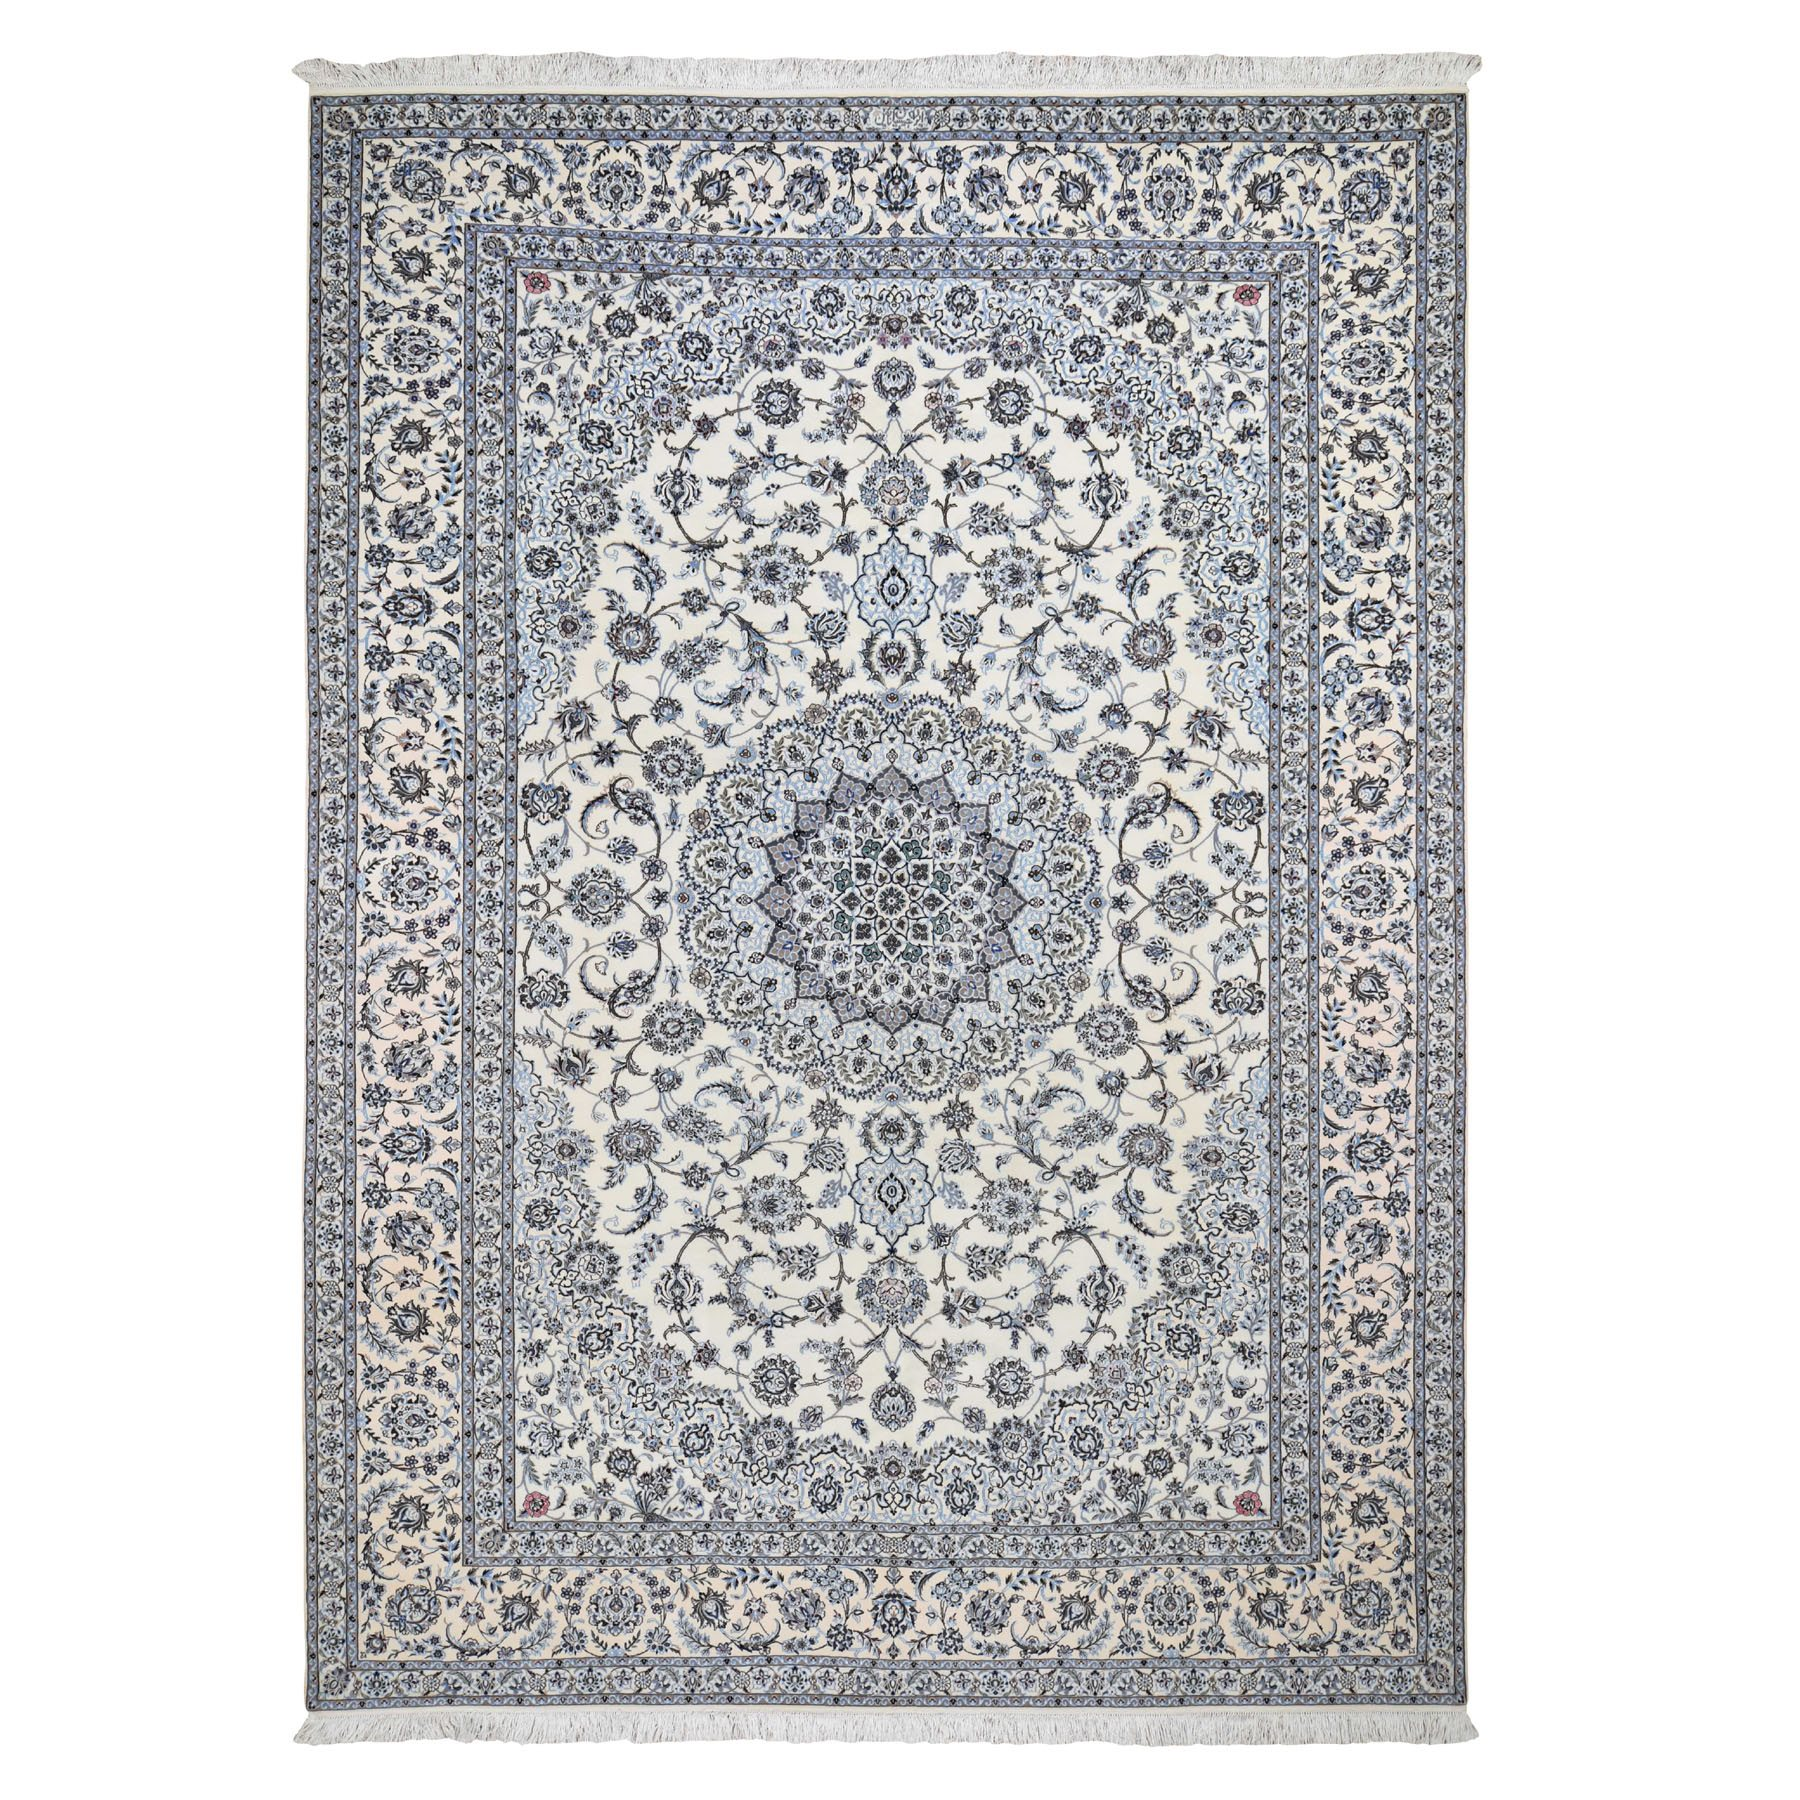 Pirniakan Collection Hand Knotted Ivory Rug No: 0196384